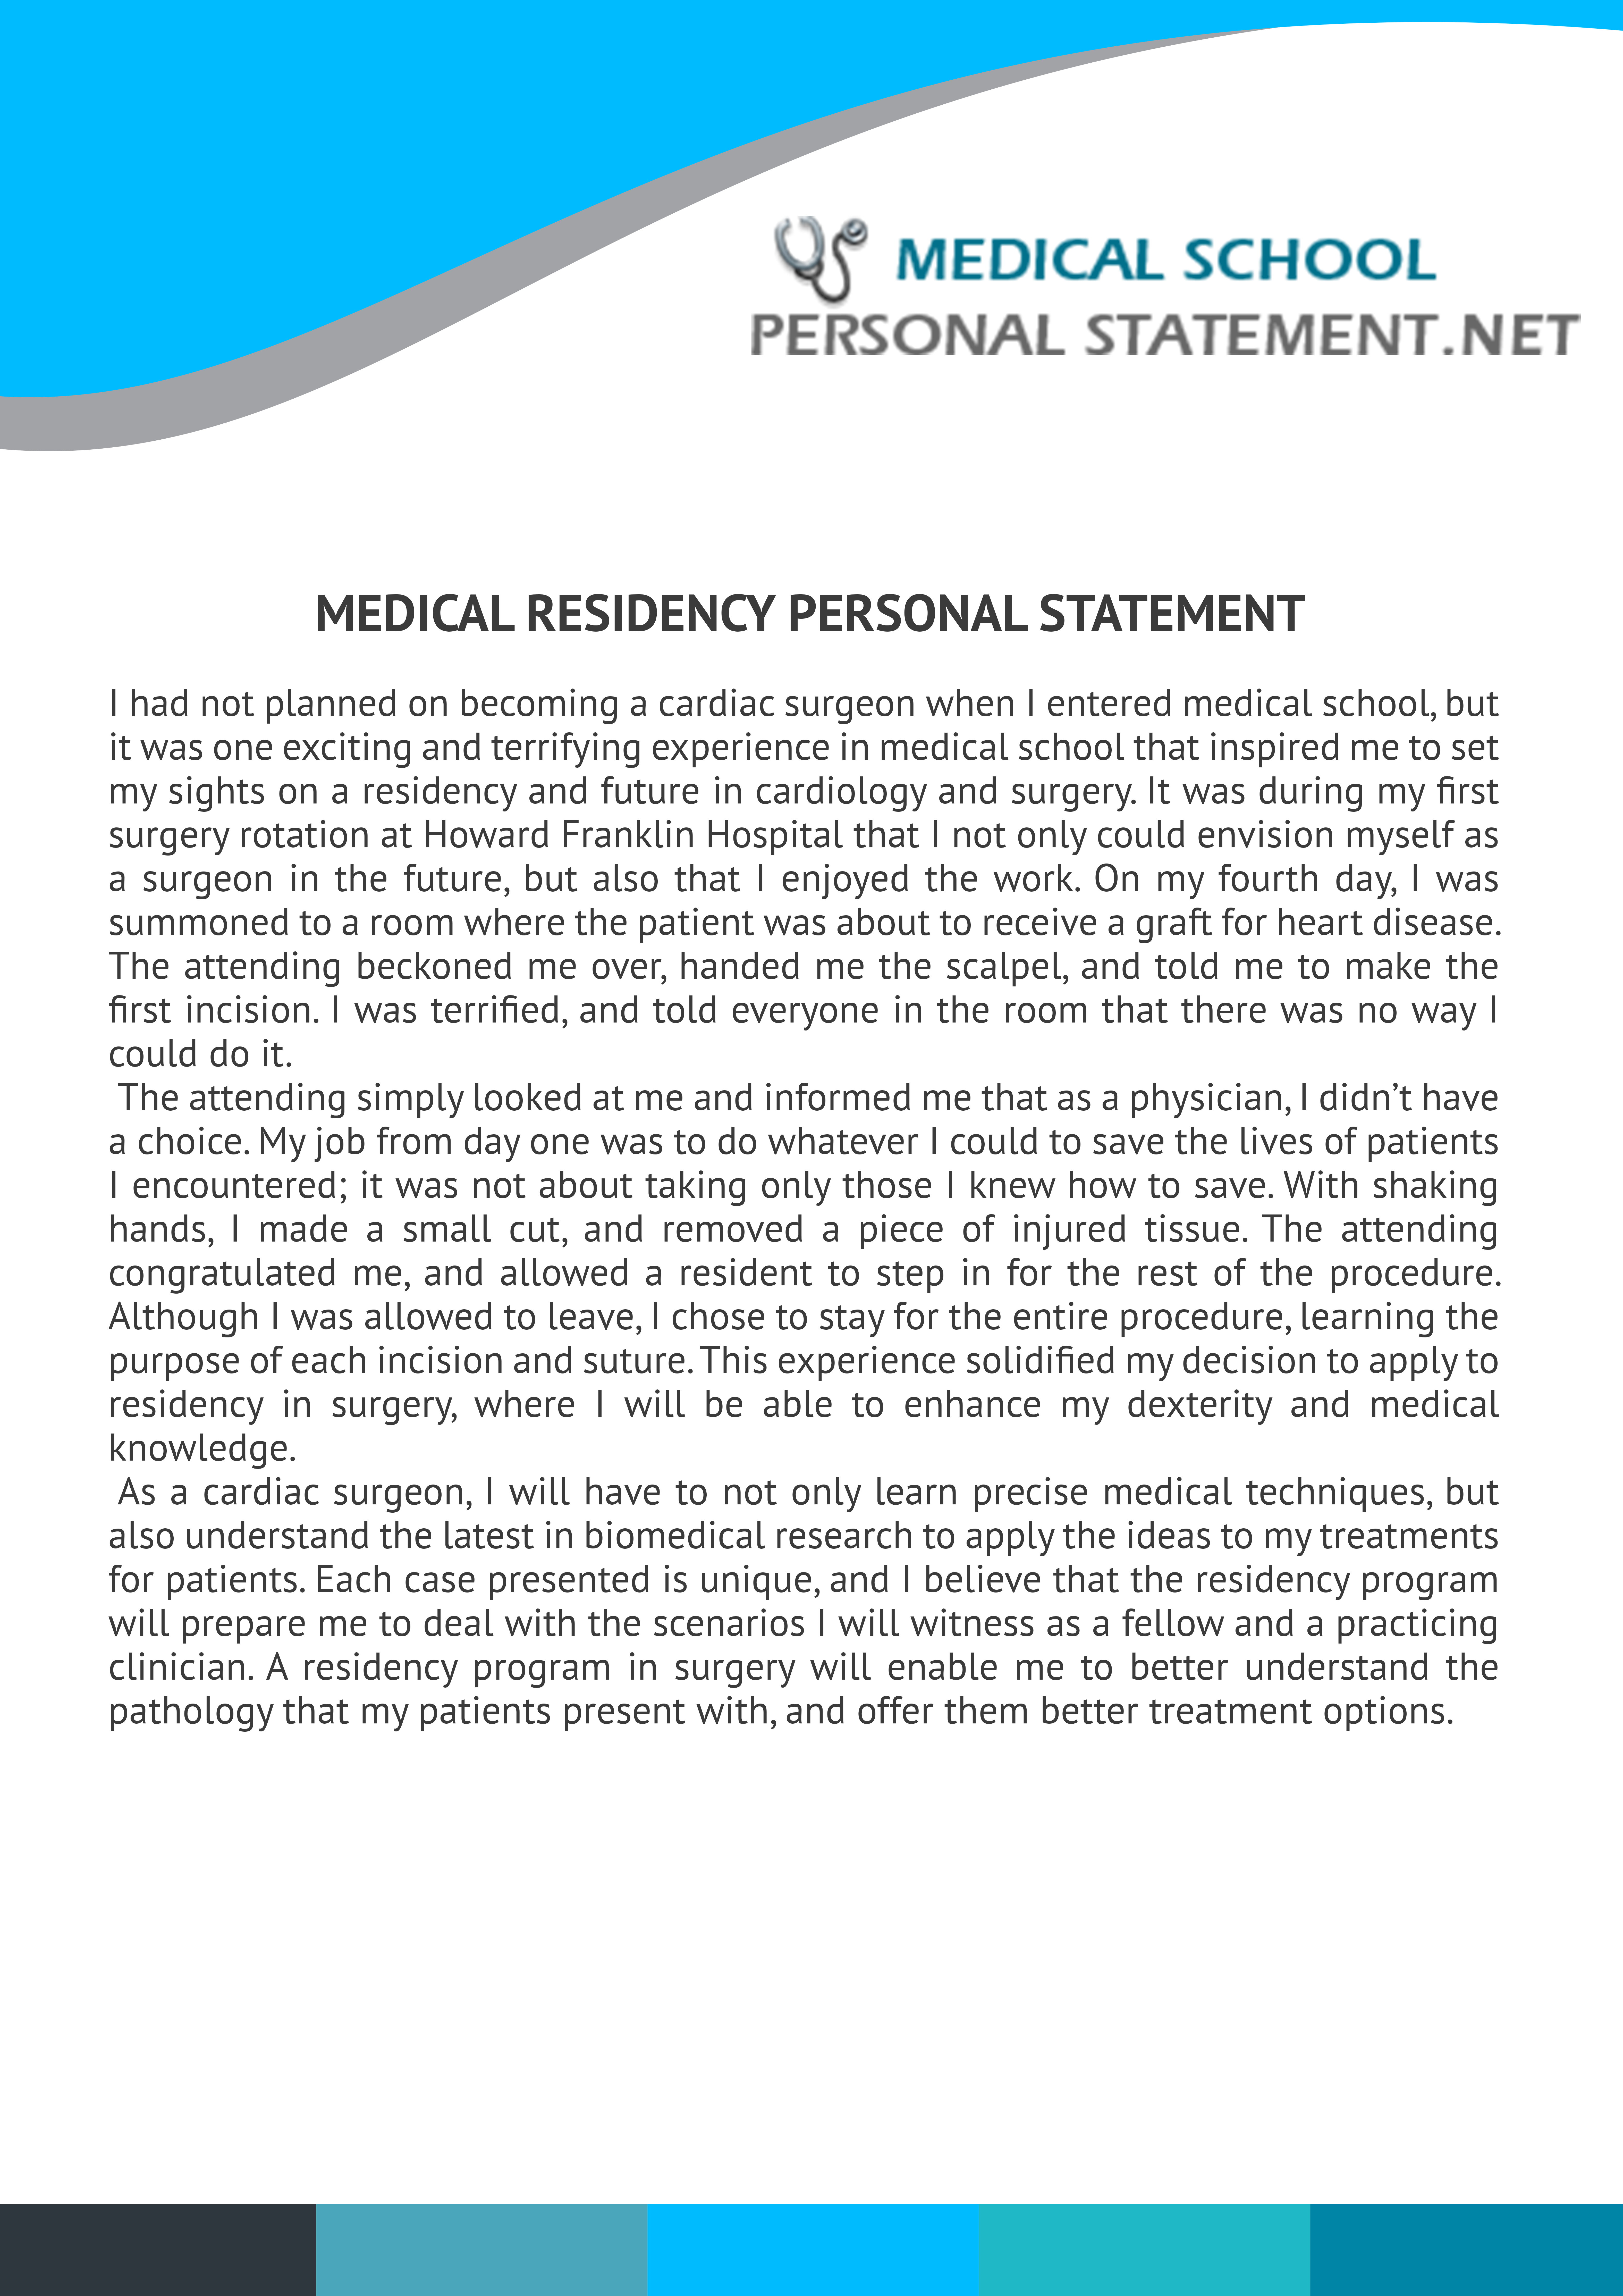 Check this medical residency personal statement sample and see